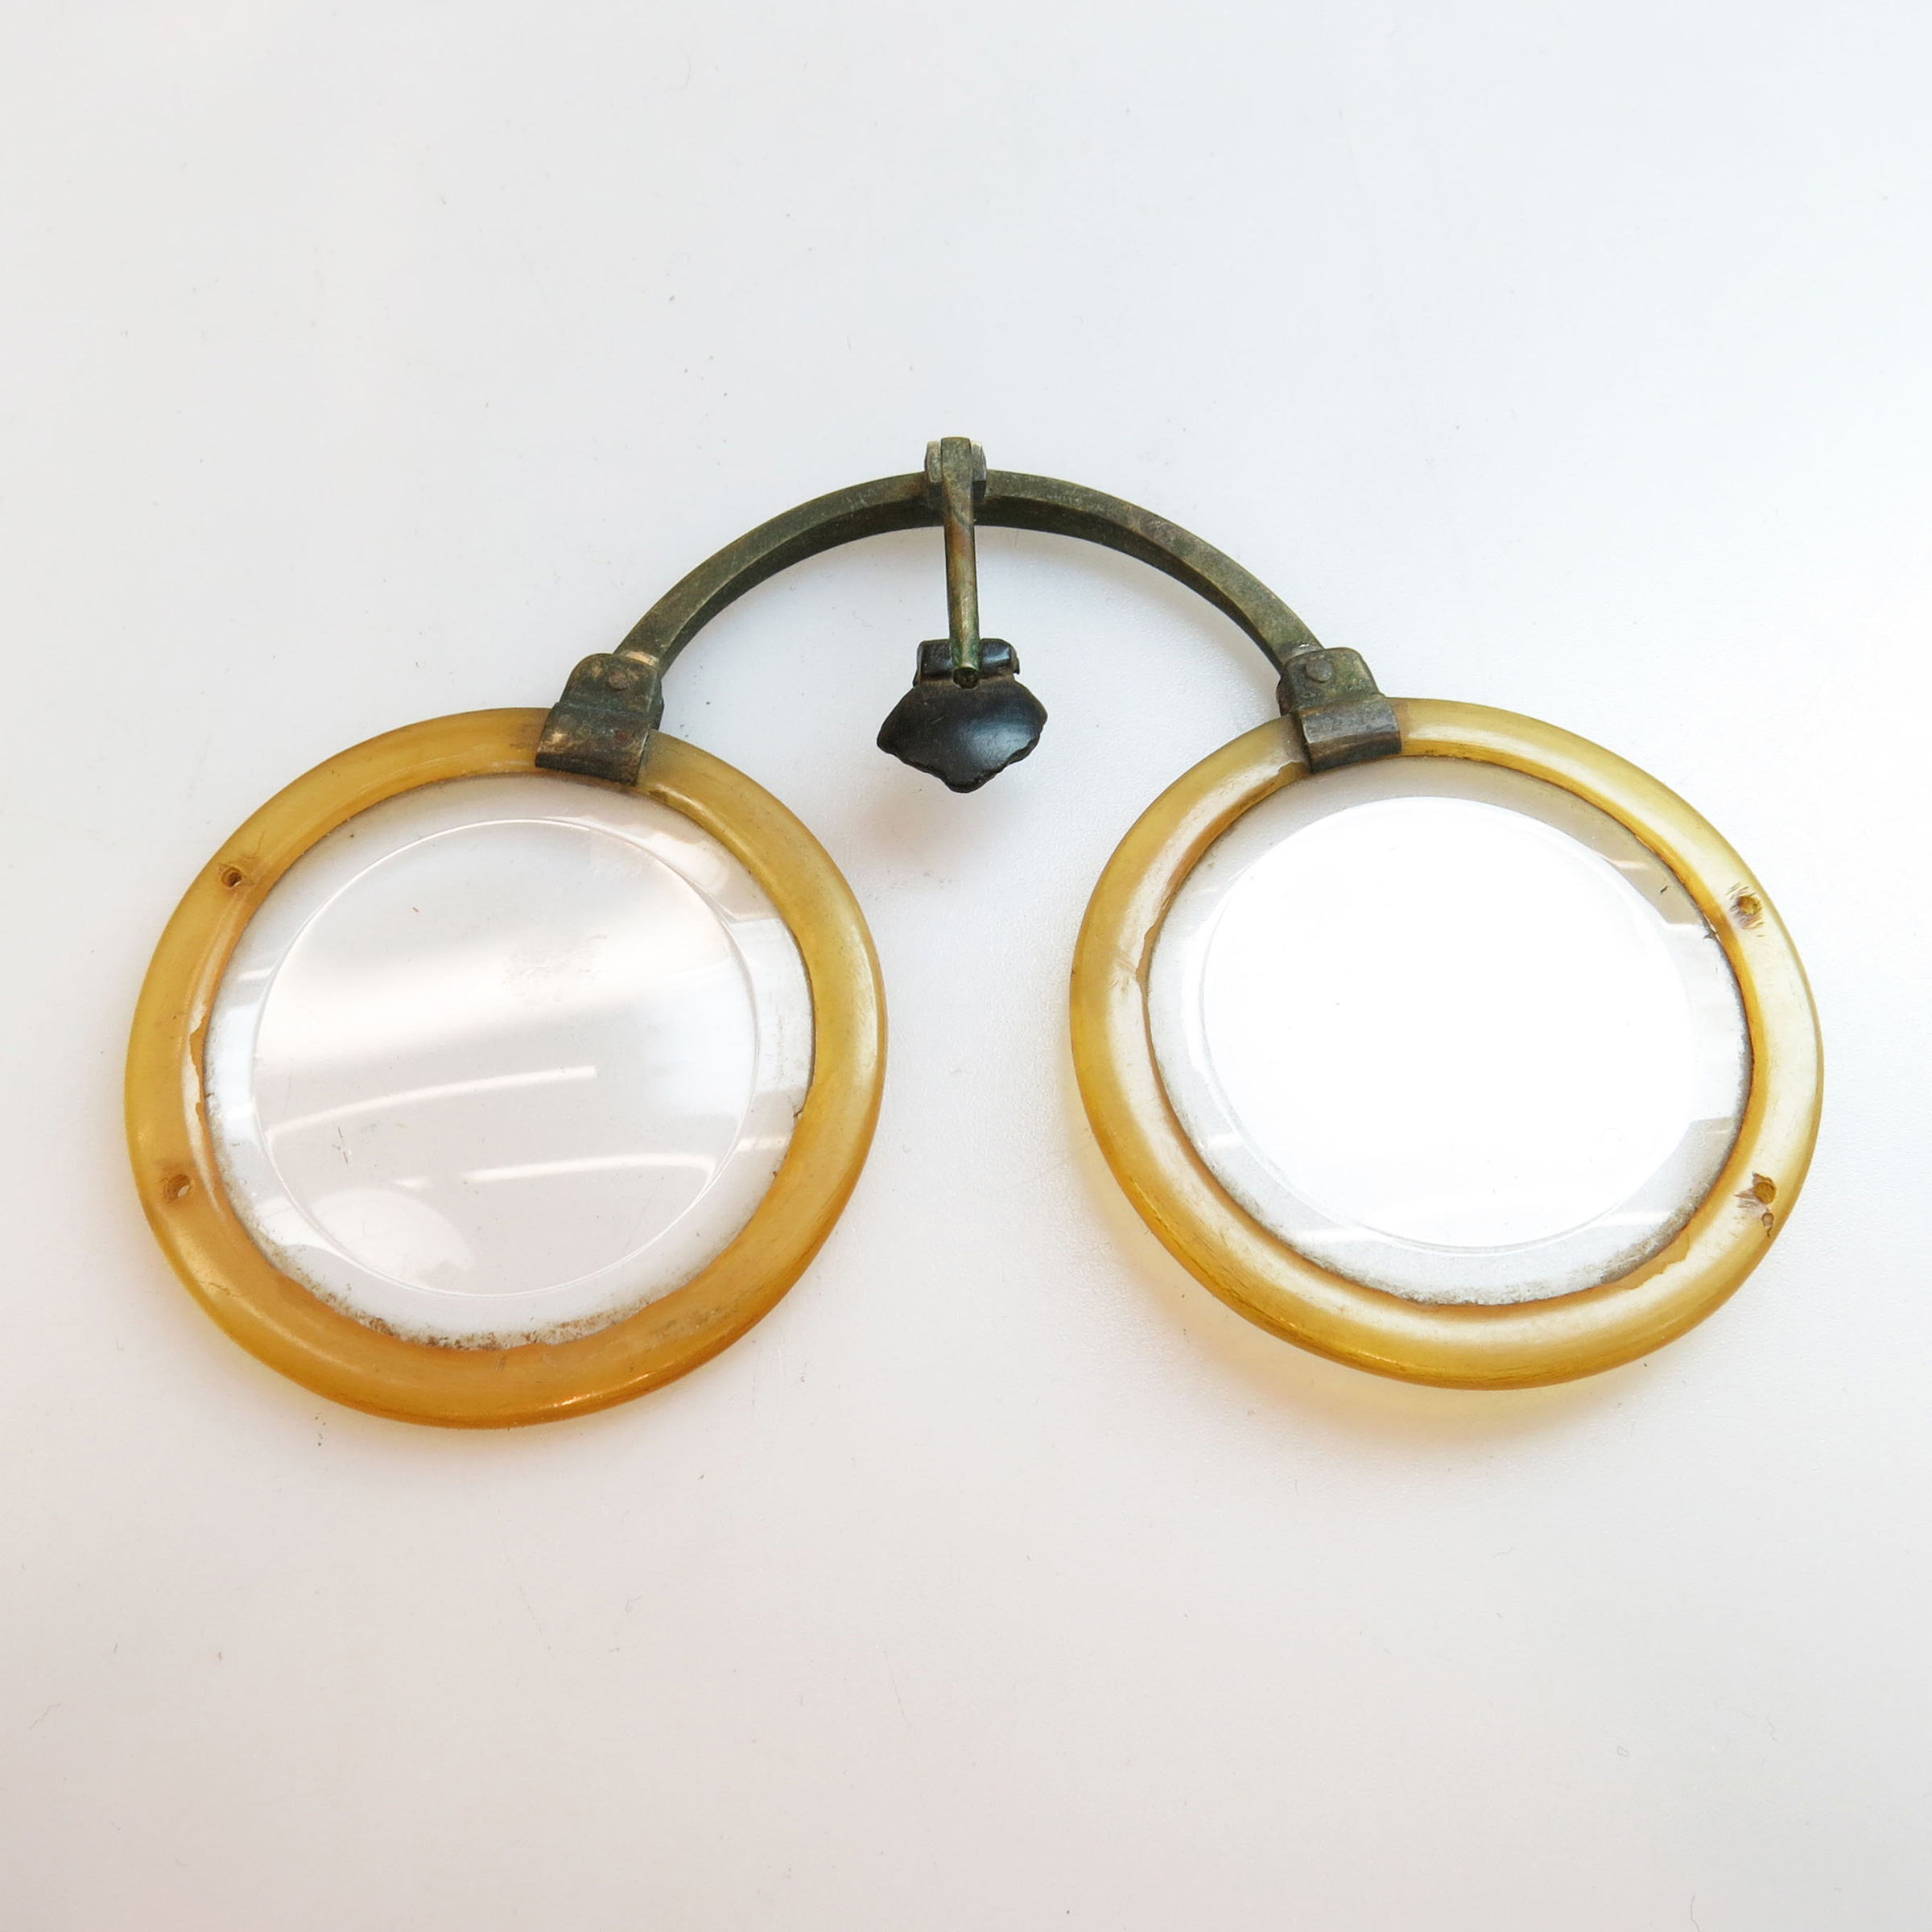 Pair Of 18th Century Chinese Baitong And Horn Spectacles